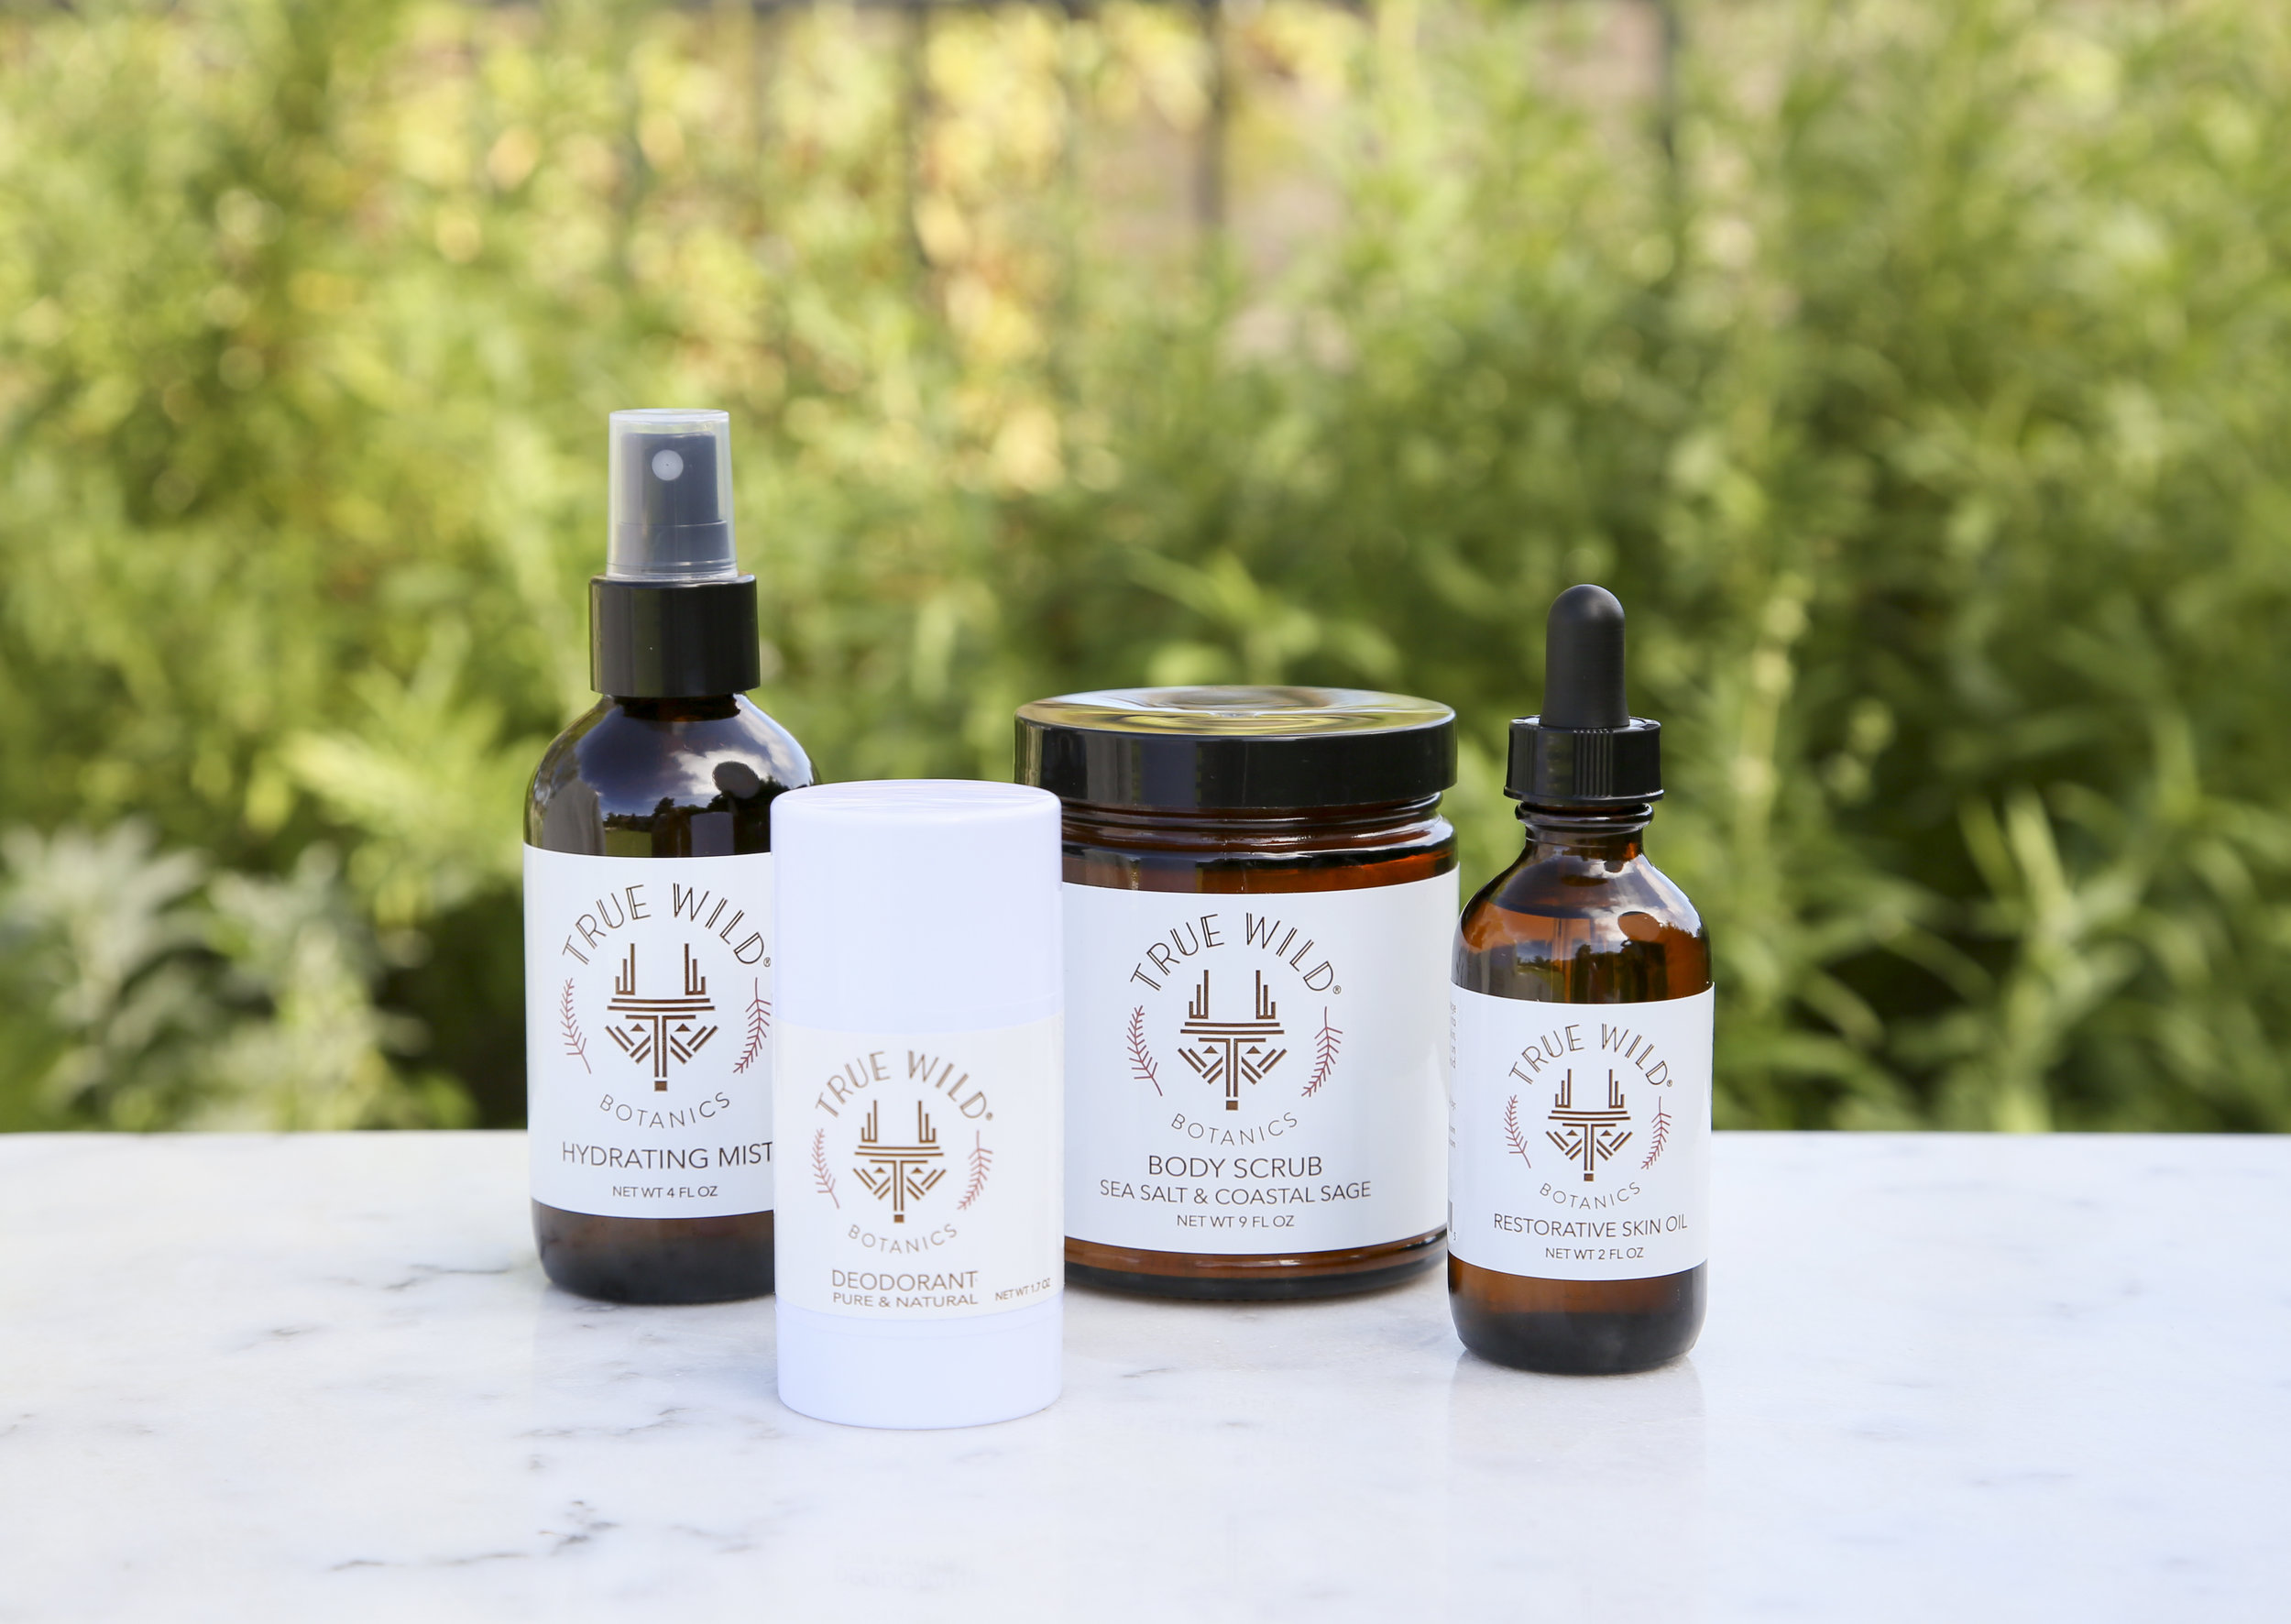 Visit our online shop 4/20- 4/30 and enjoy 30% off all True Wild Botanics products during our Earth Day Sale!